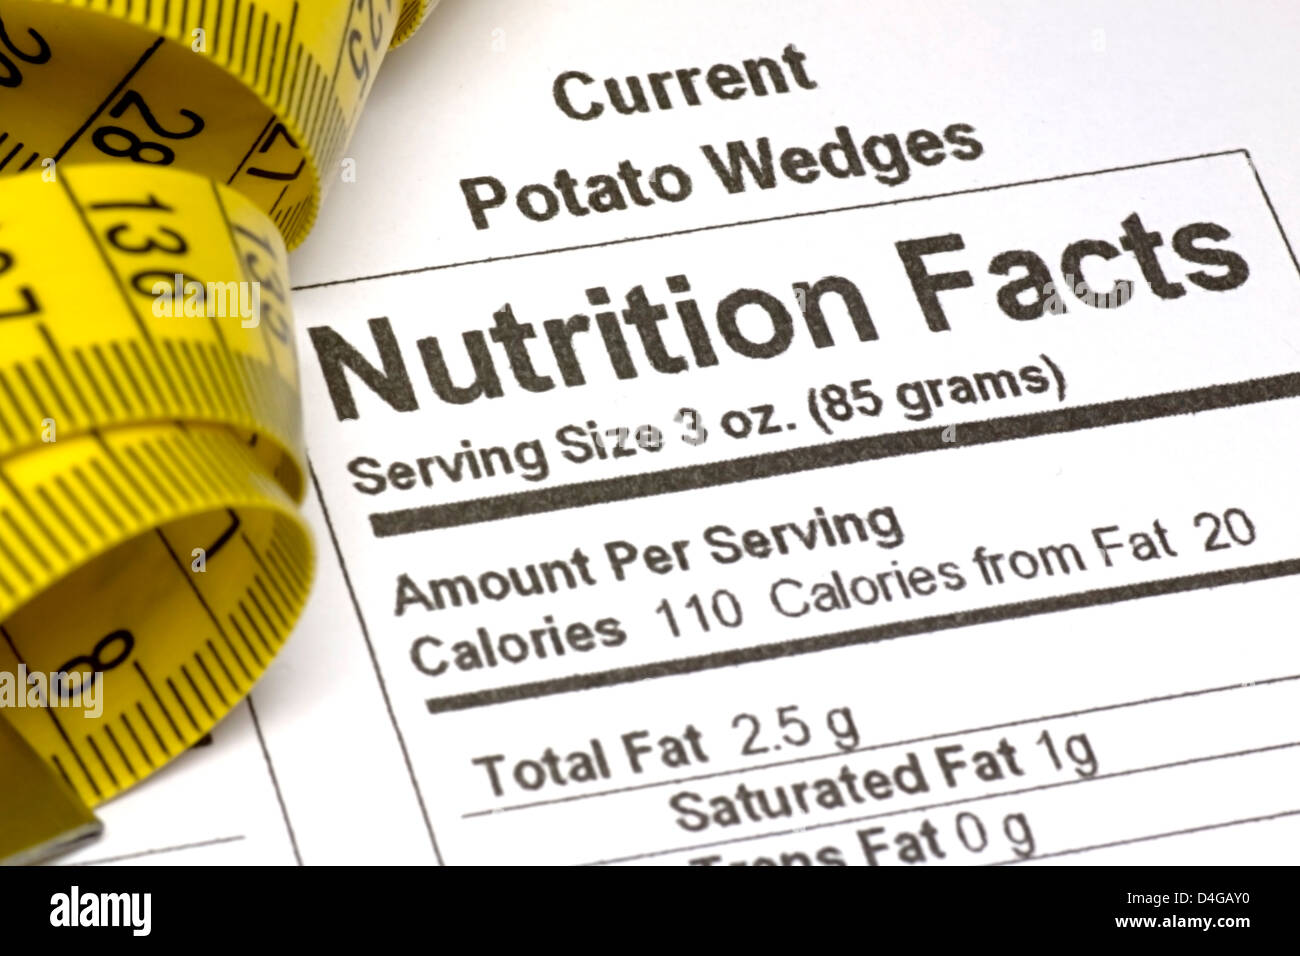 Yellow tape measure next to nutrition information on packaging in the USA - Stock Image